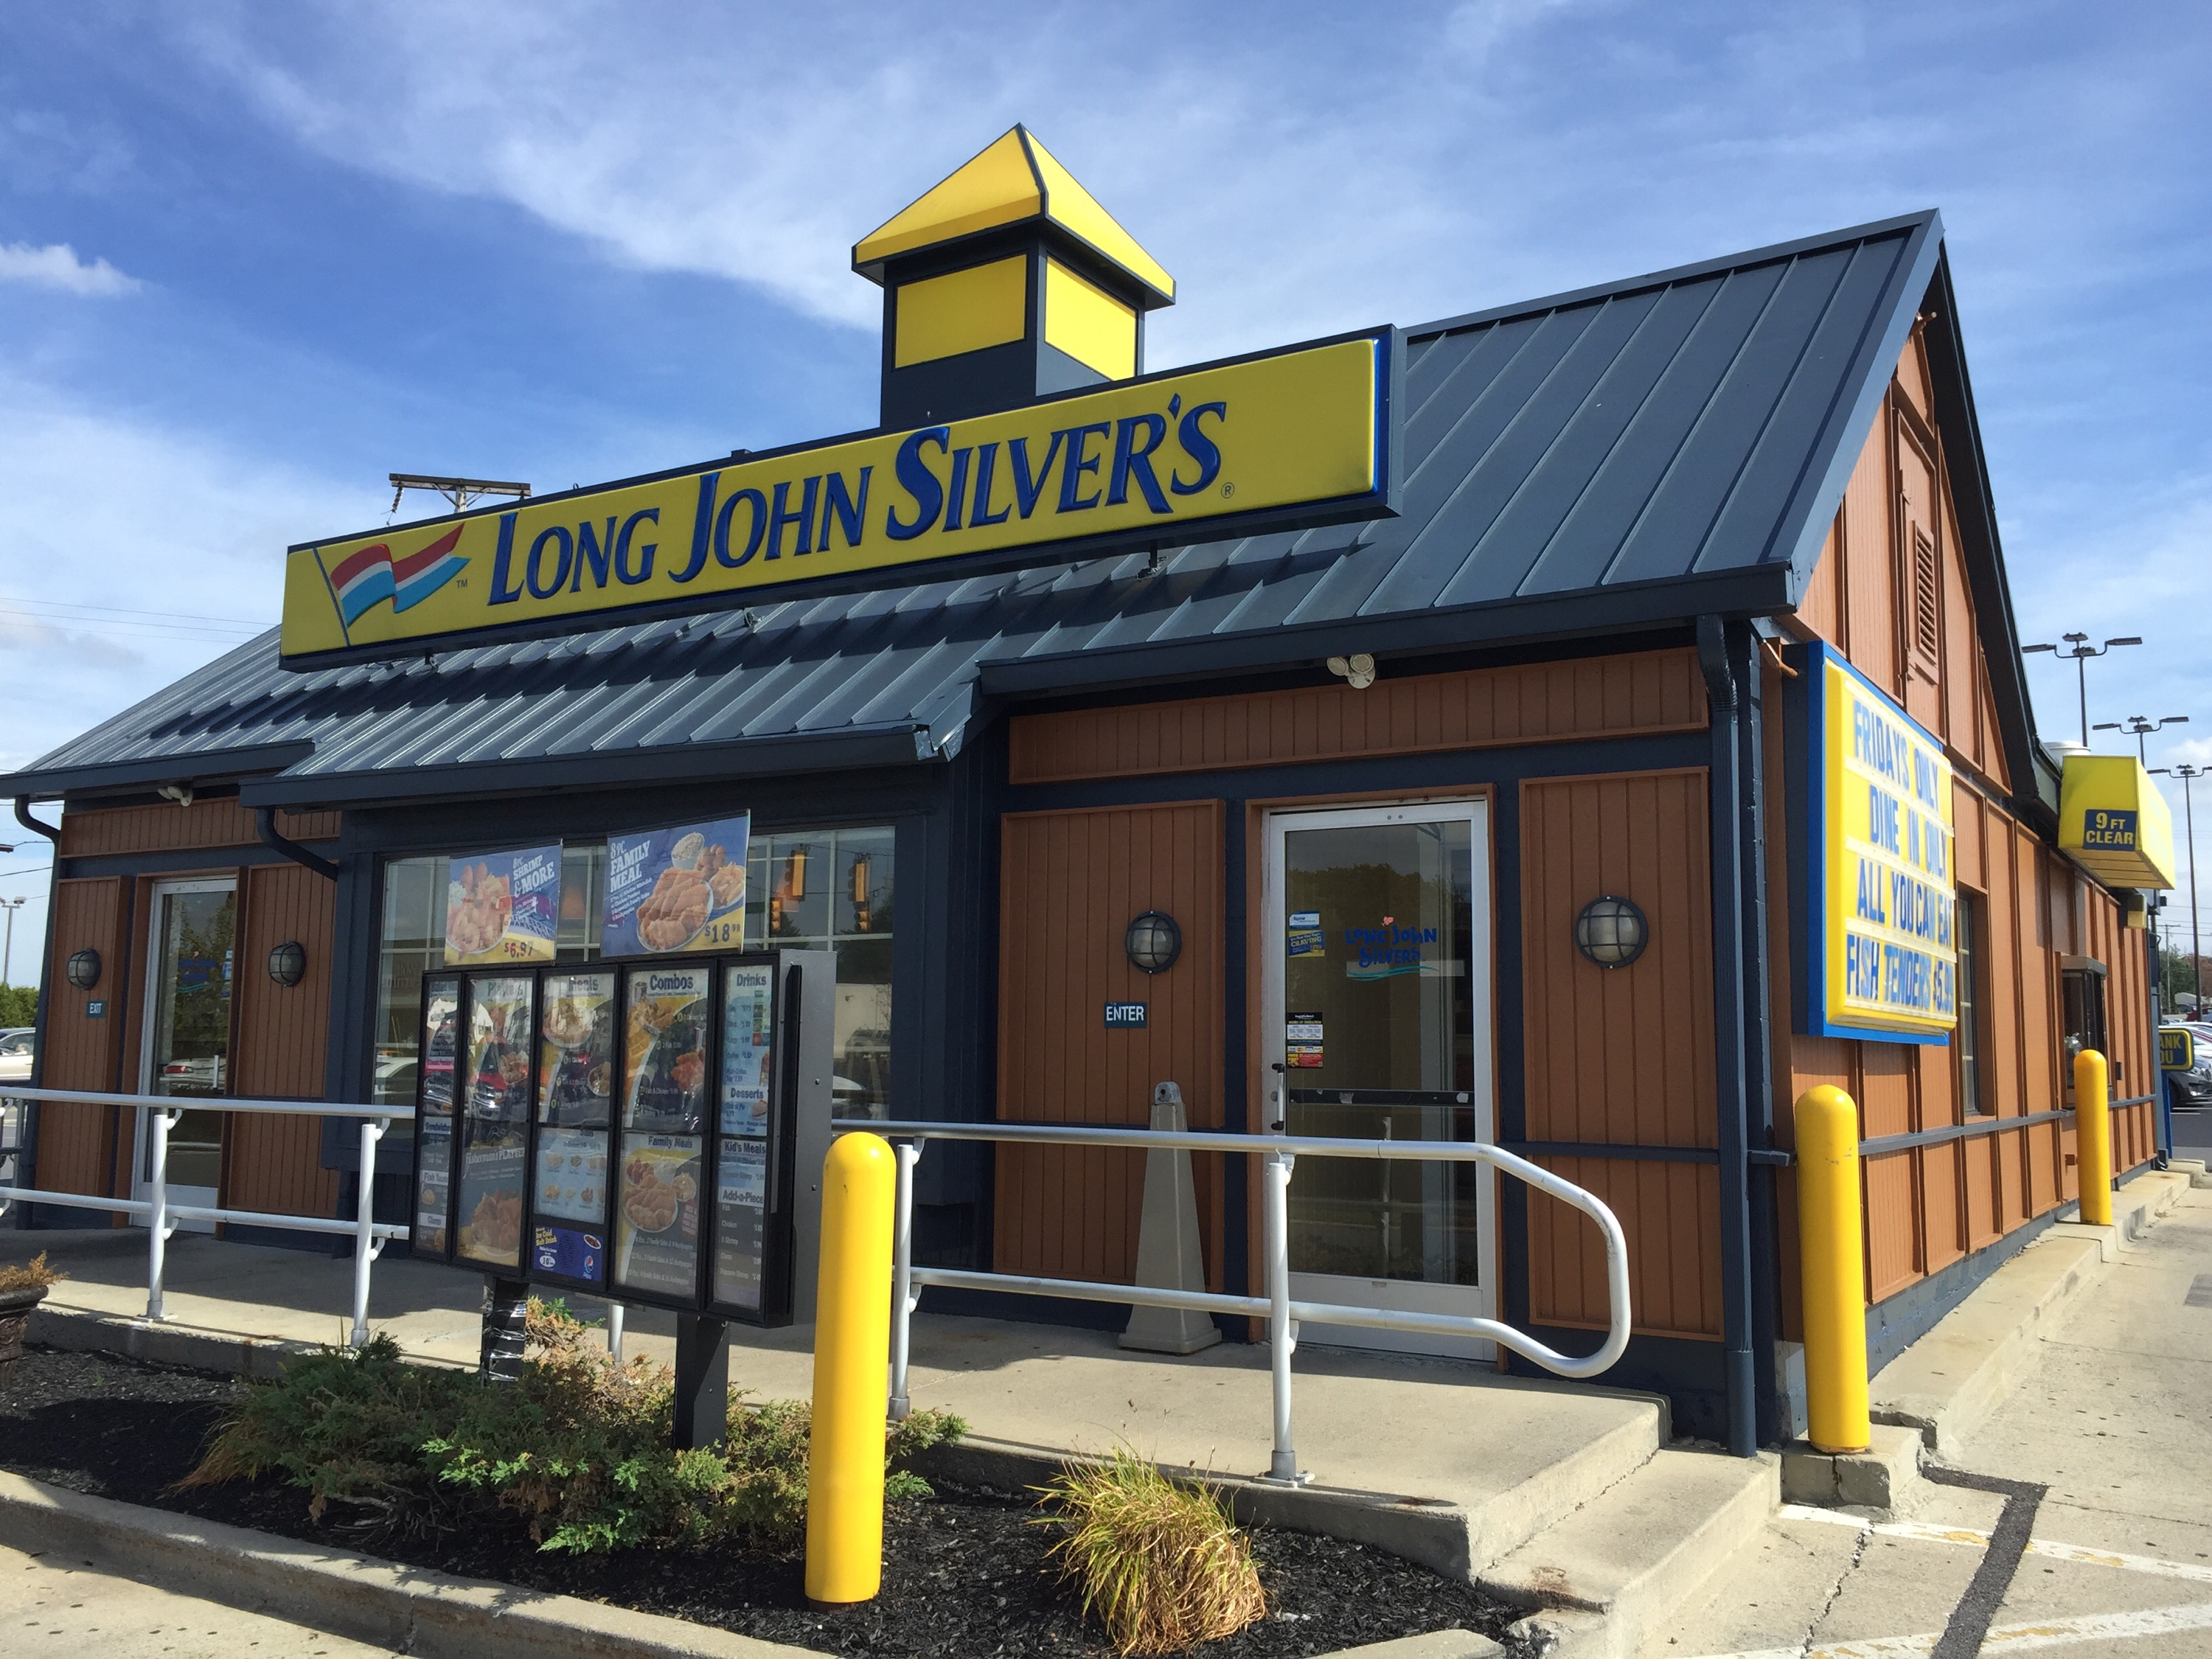 Long John Silver's is America's largest quick-service seafood chain with over units worldwide.